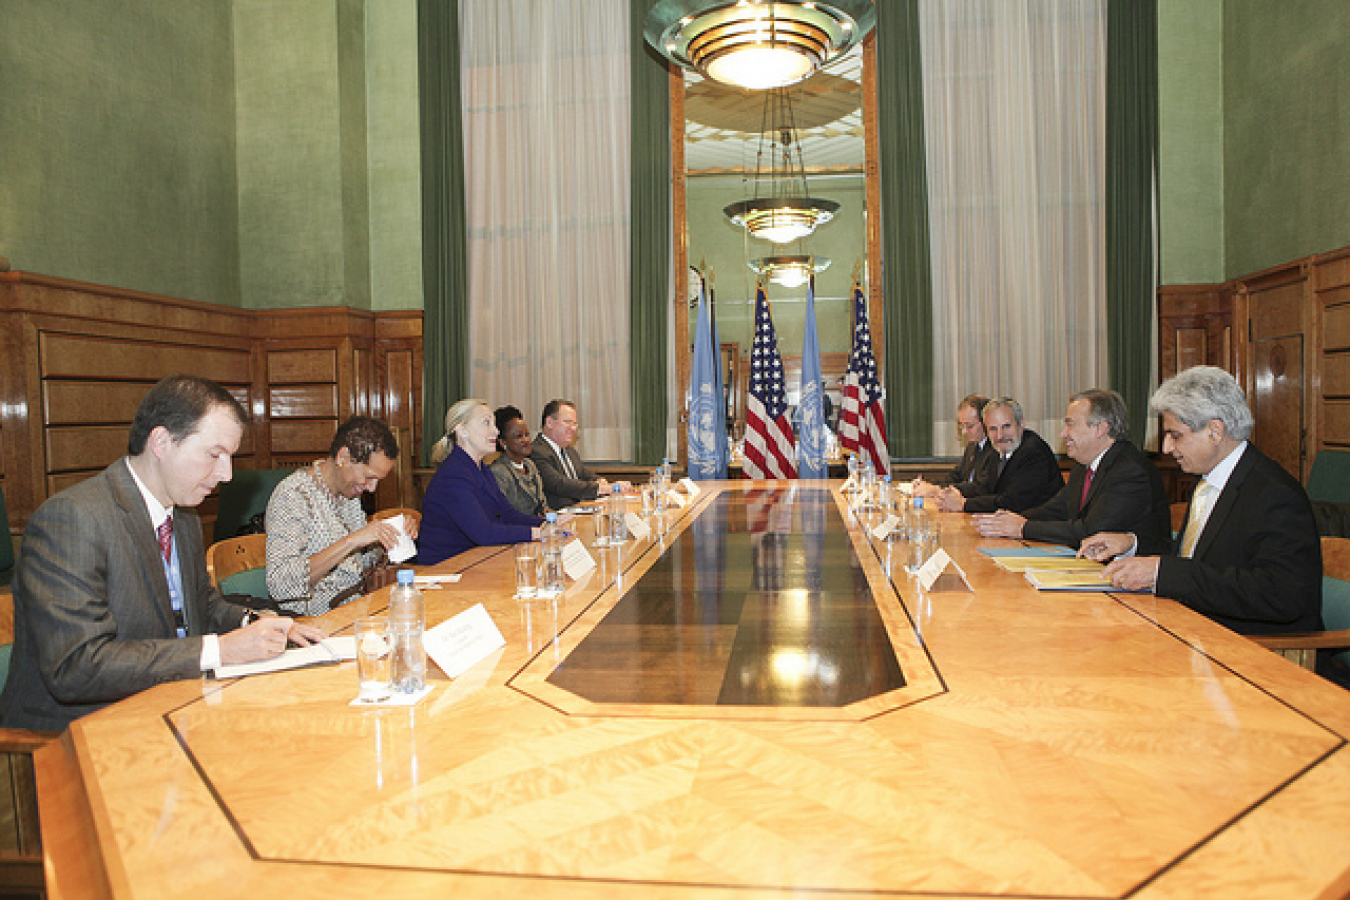 Secretary Clinton Meets with U.N. High Commissioner for Refugees Guterres